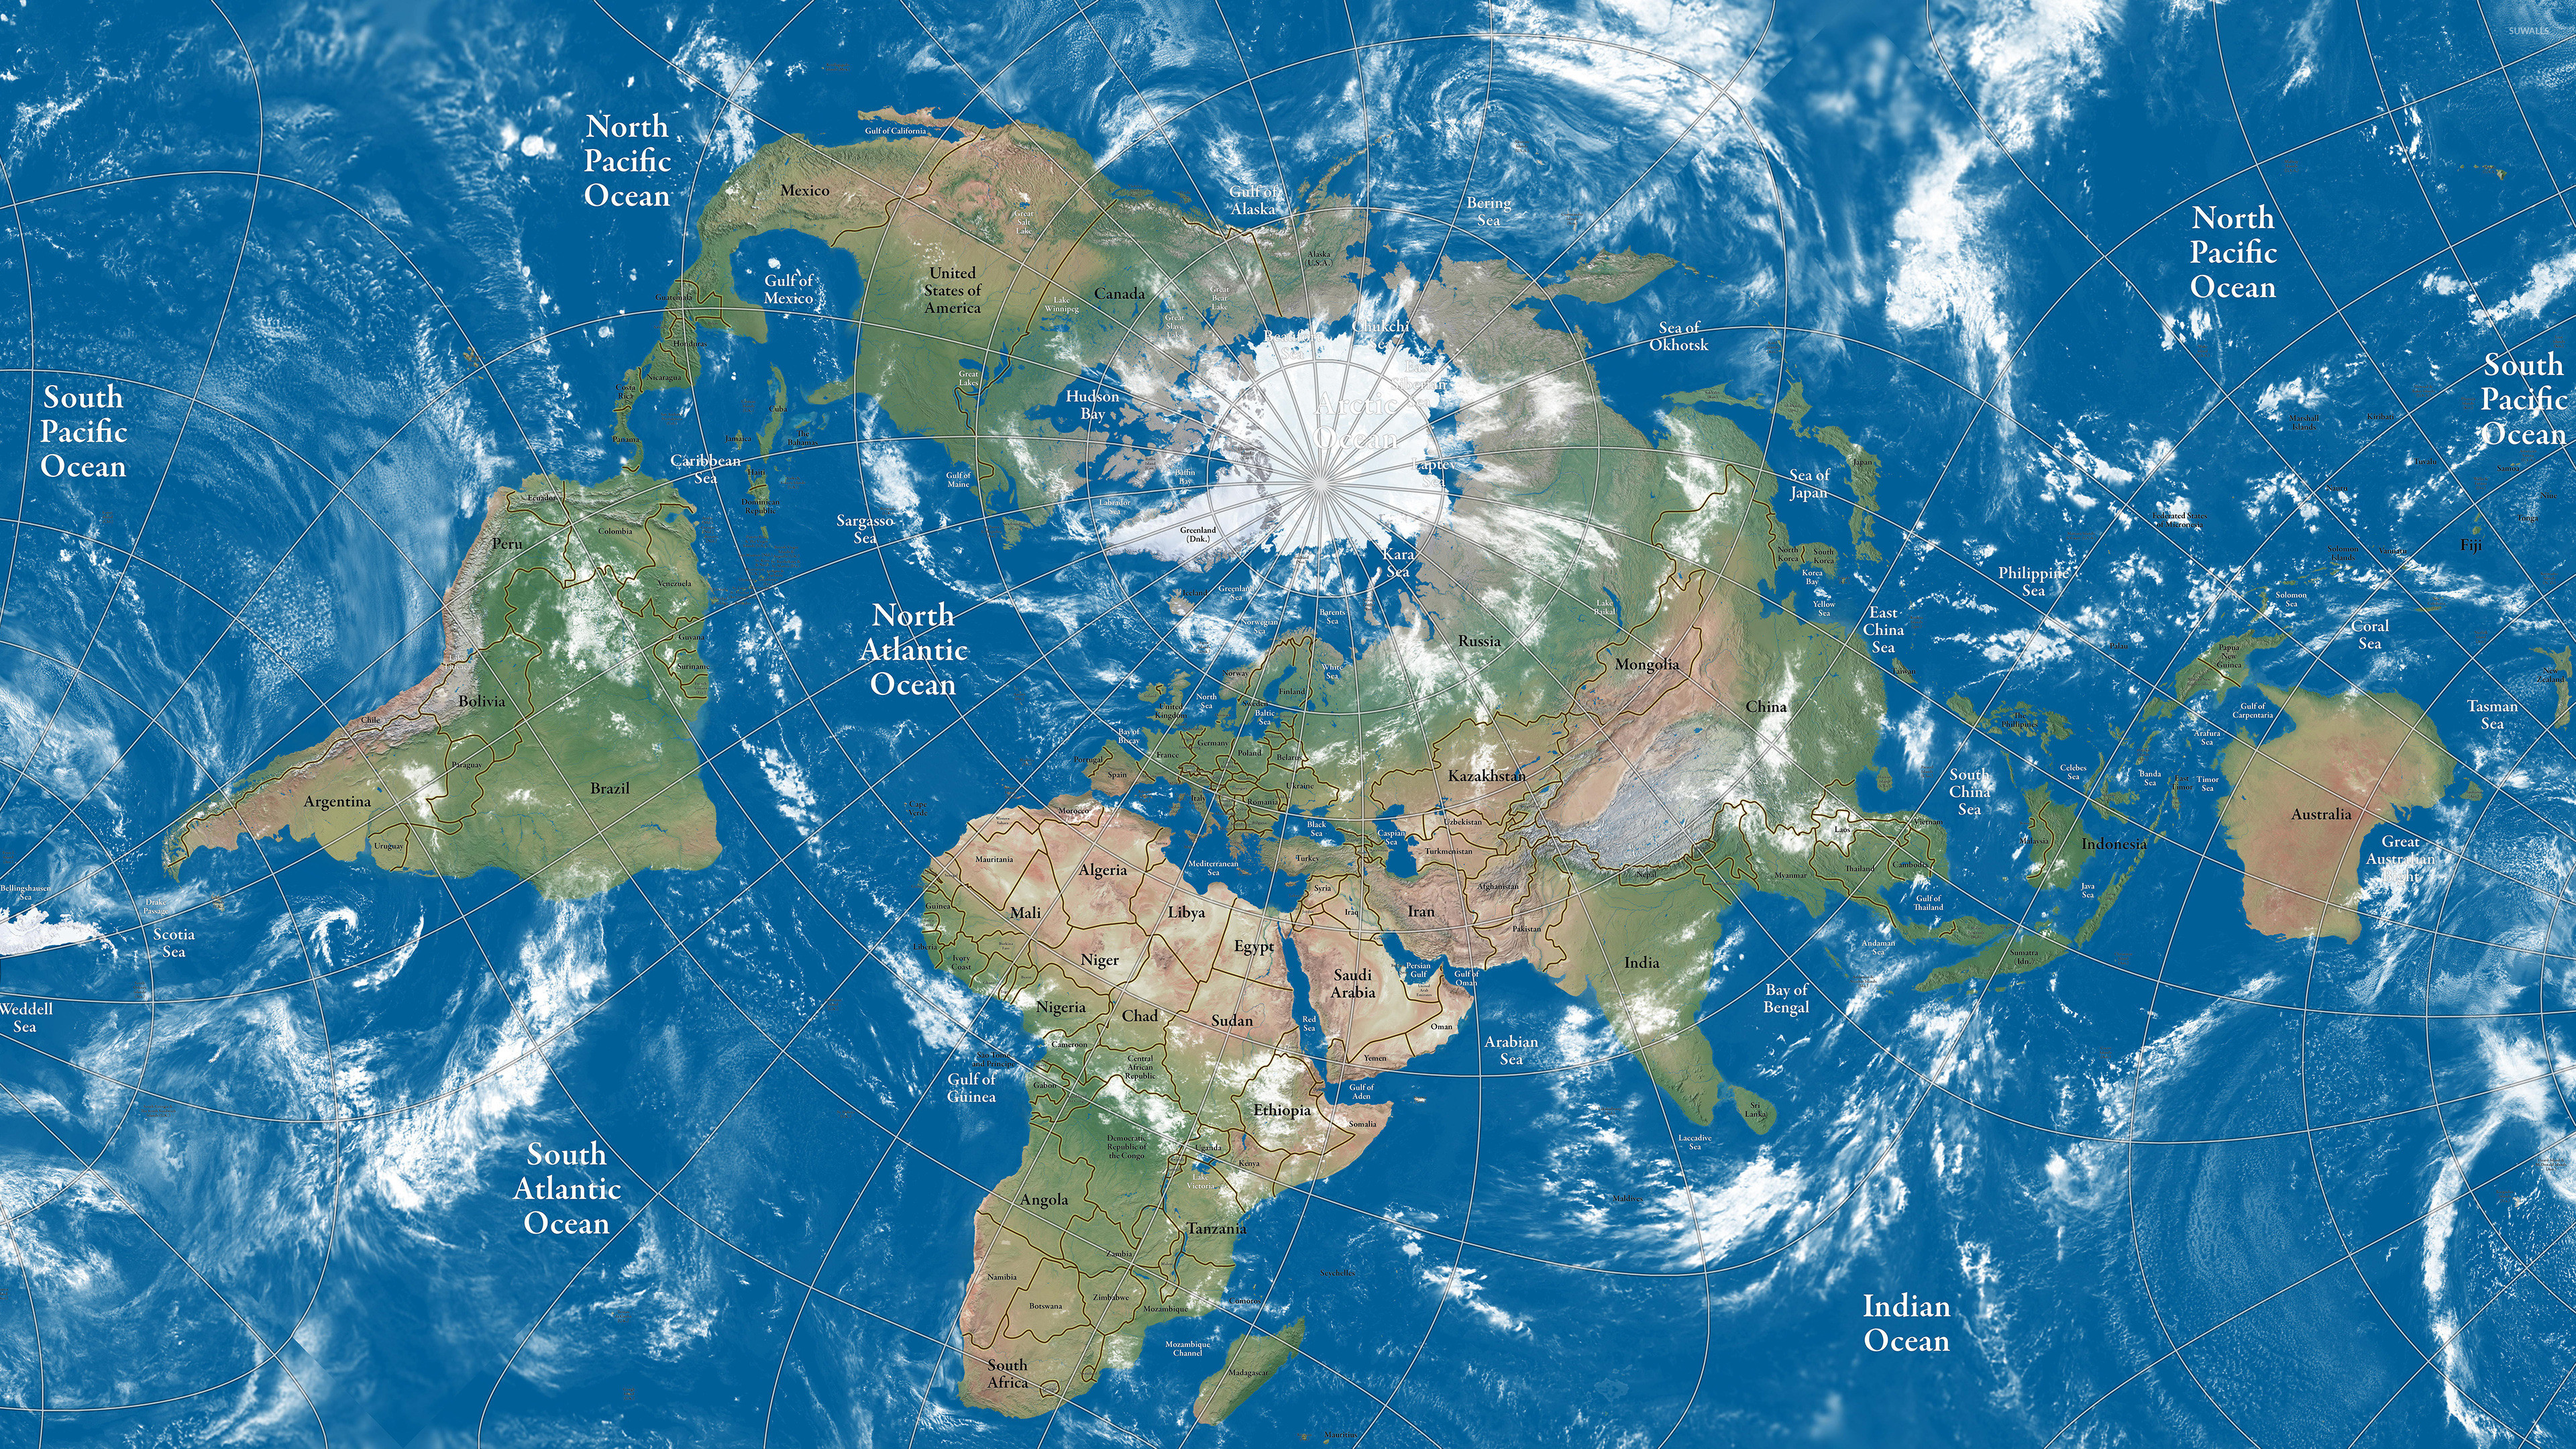 World map wallpapers 66 background pictures 2560x1600 pixel world map wallpaper 8381 gumiabroncs Images